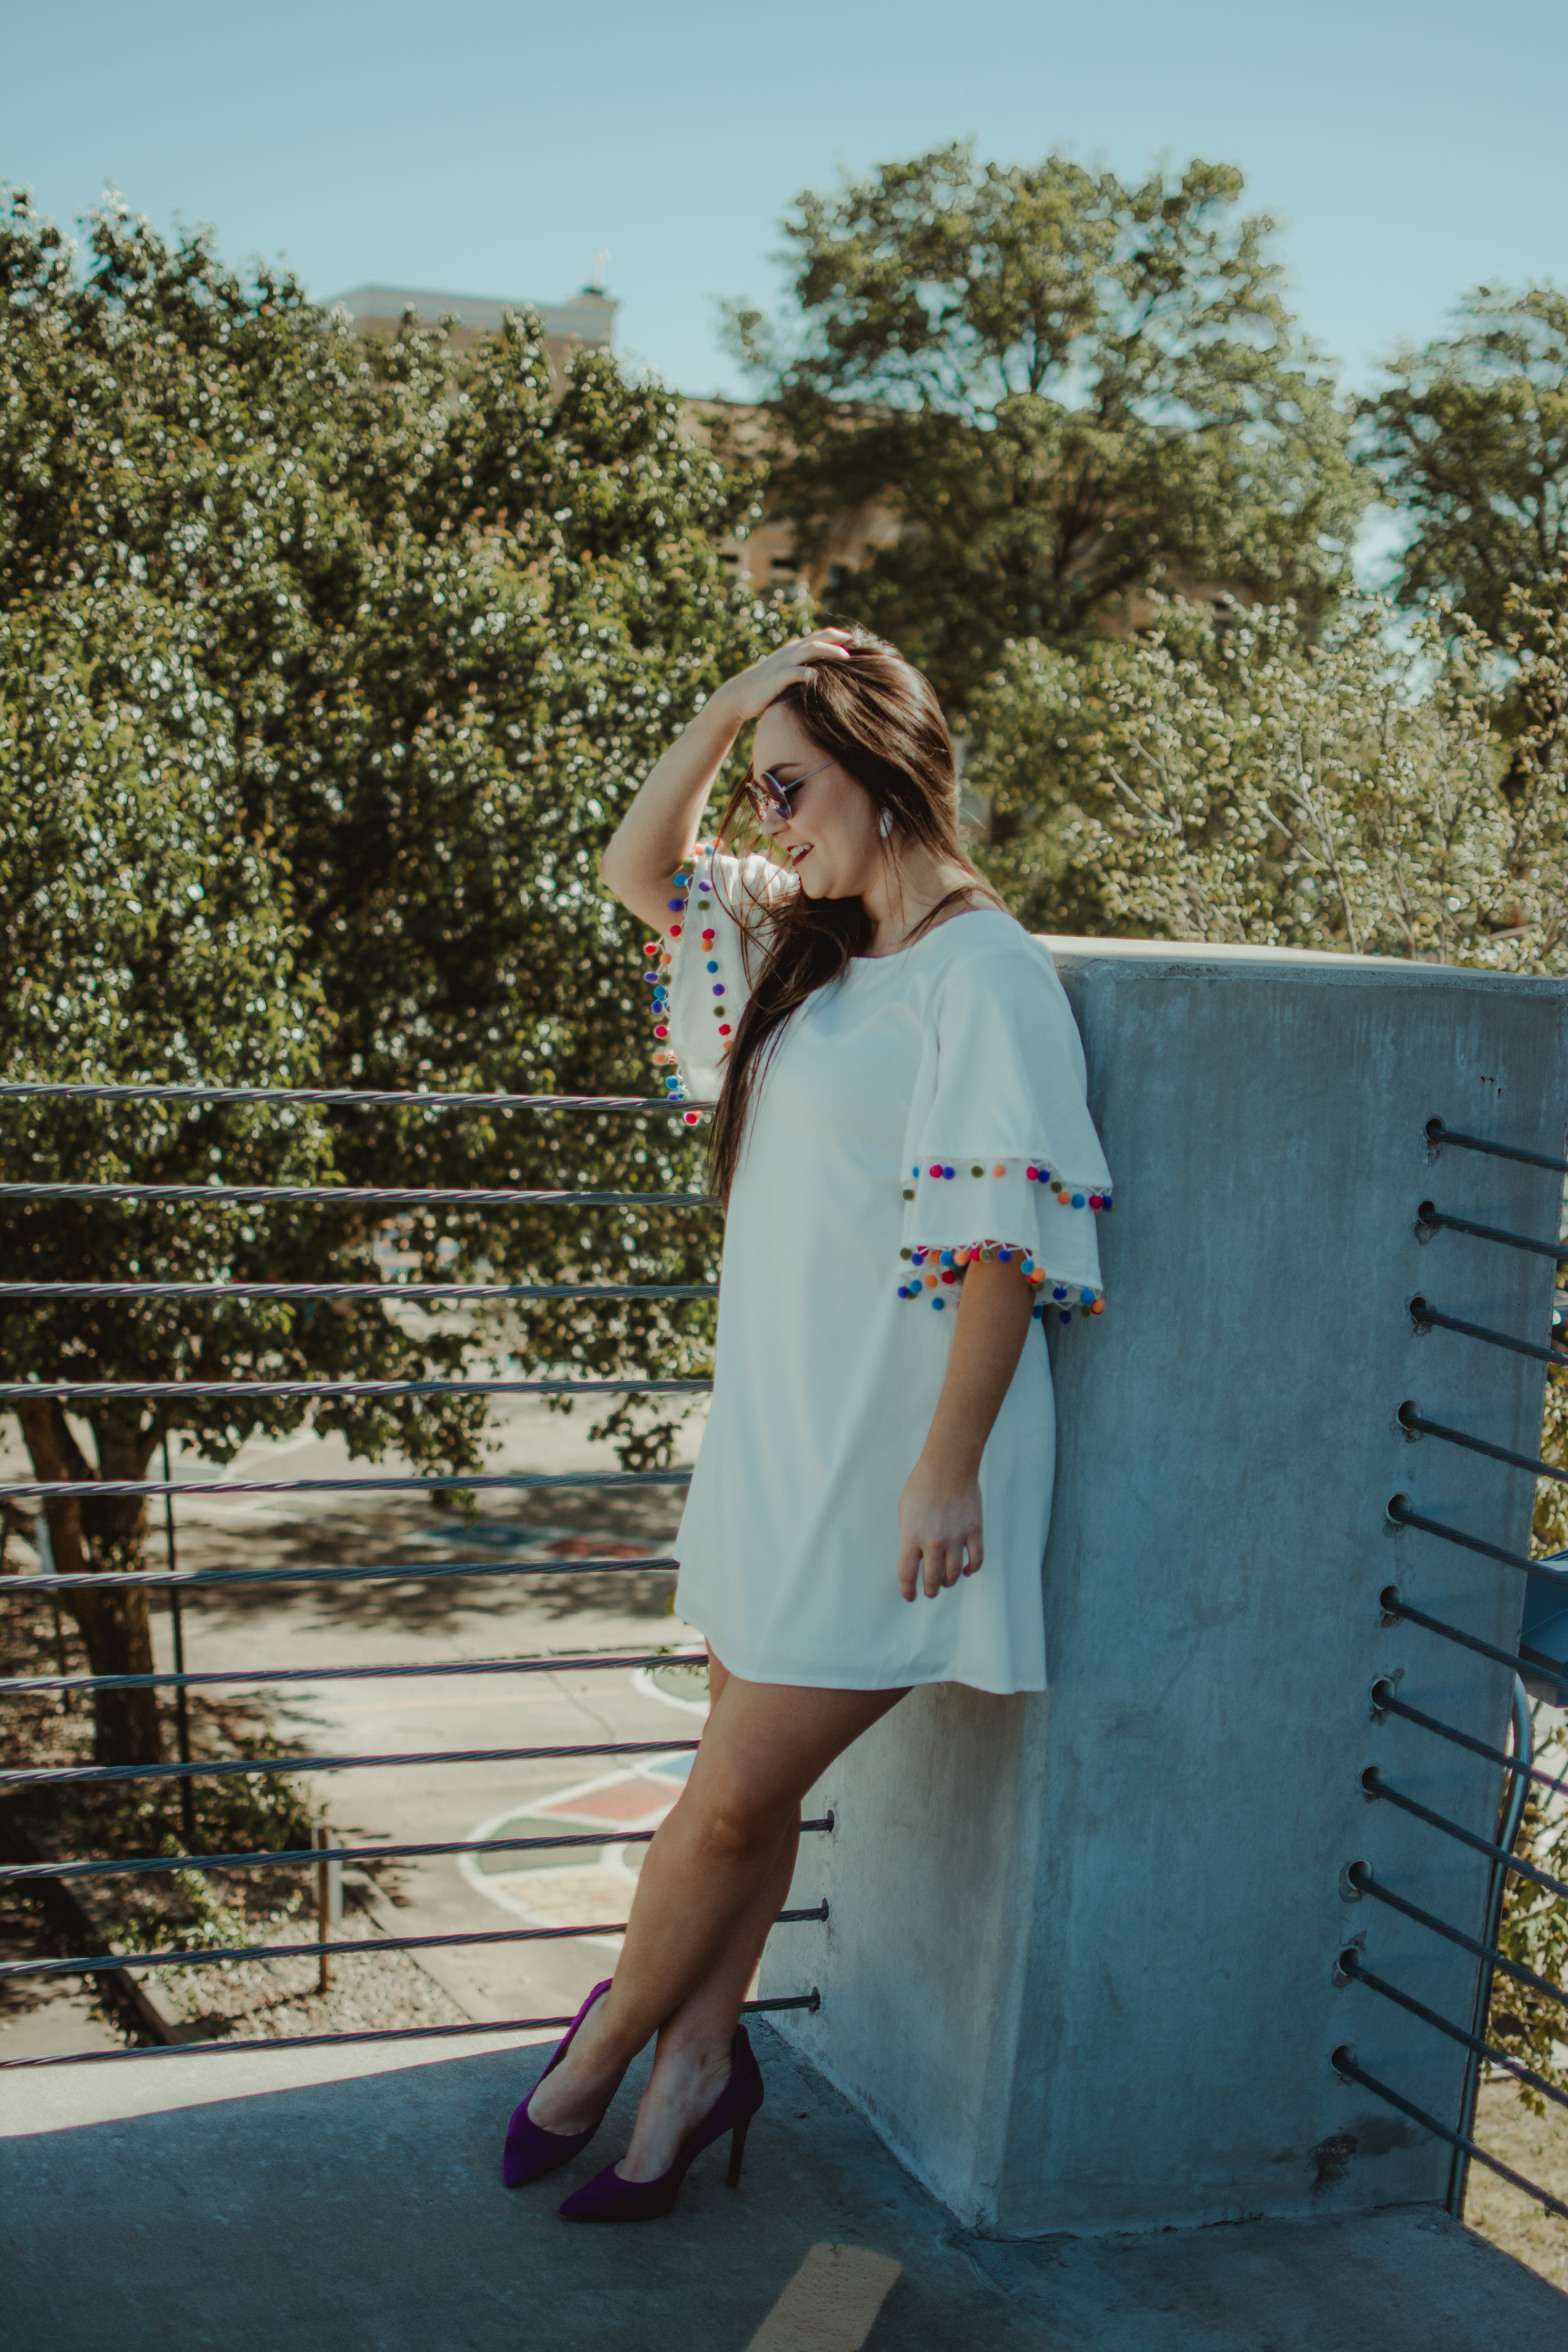 indie-boutique-fort-smith-arkansas-fashion-photography